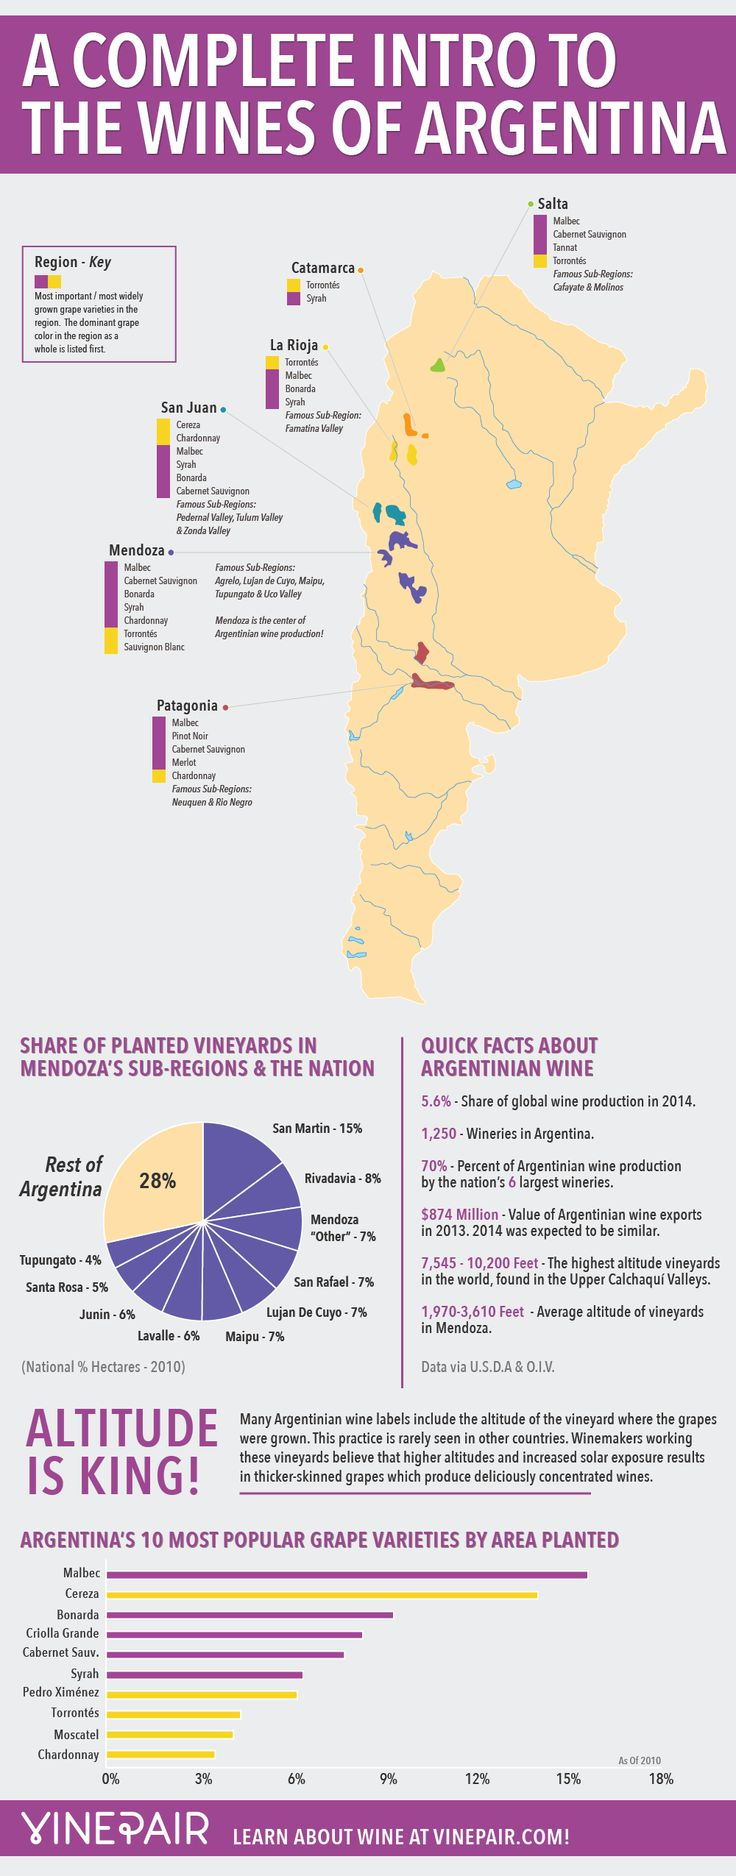 A Complete Introduction To The Wines Of Argentina: Map & Infographic